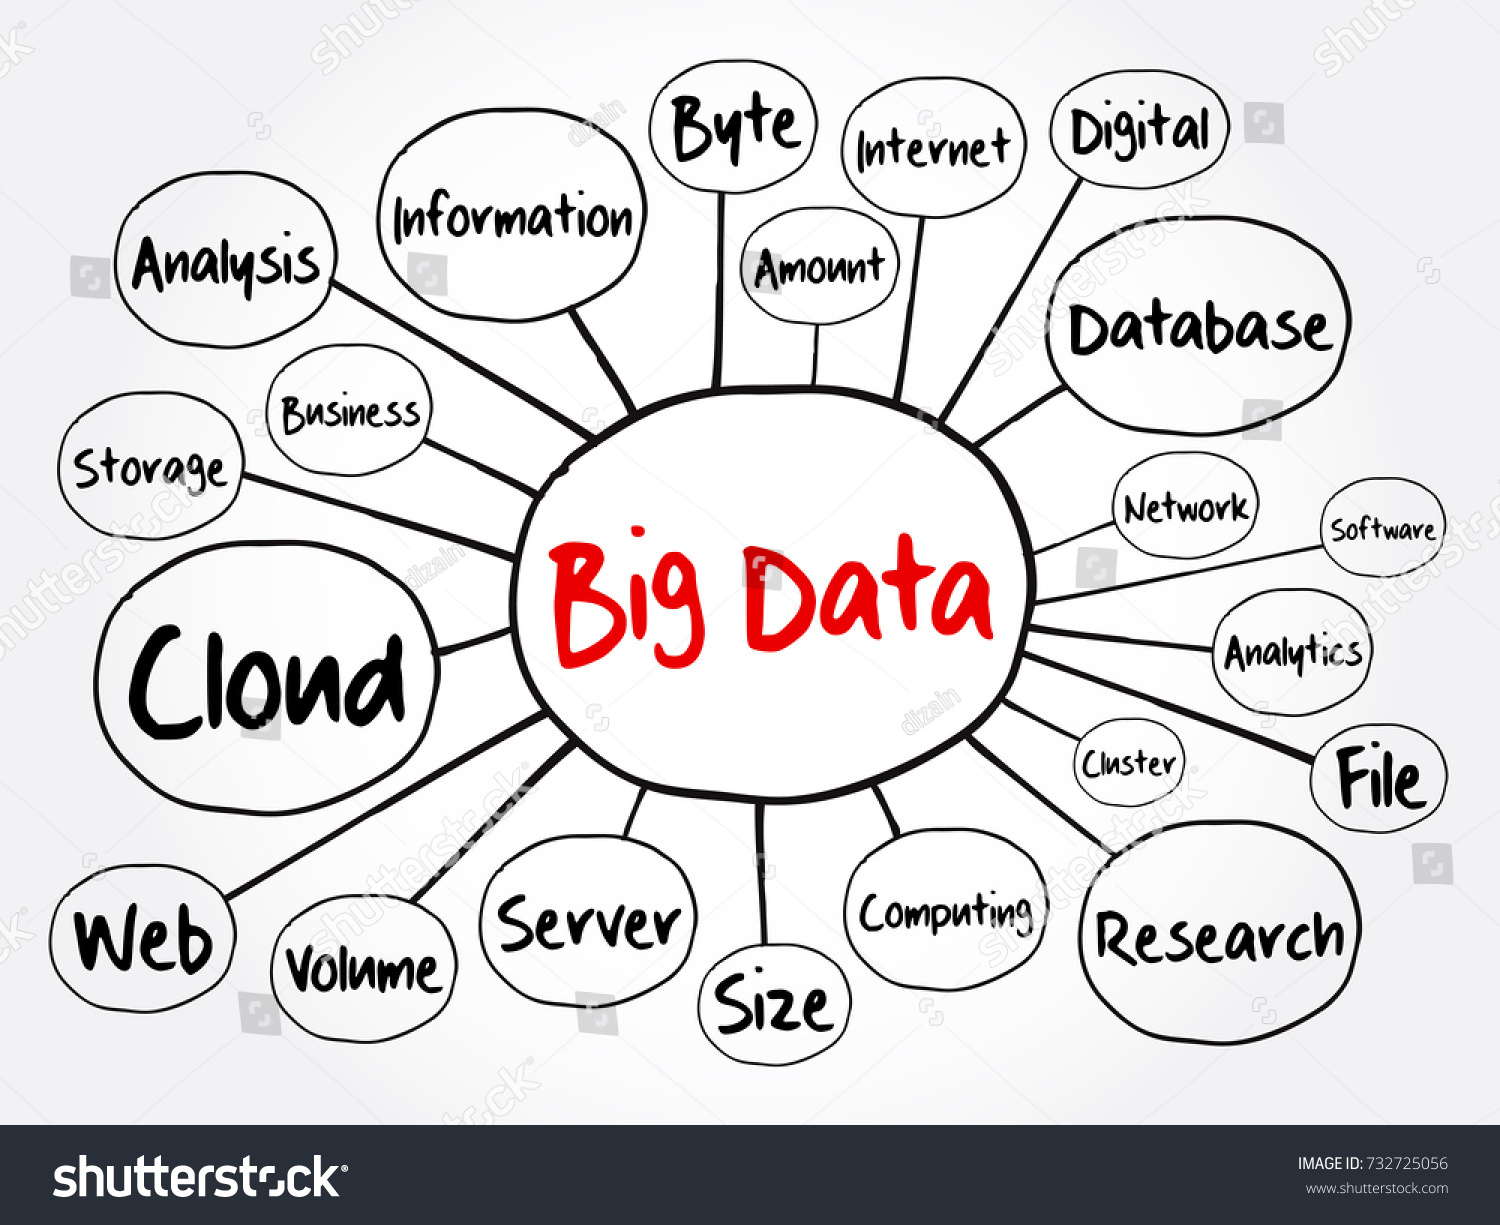 Big data mind map flowchart technology stock vector 732725056 big data mind map flowchart technology business concept for presentations and reports nvjuhfo Images